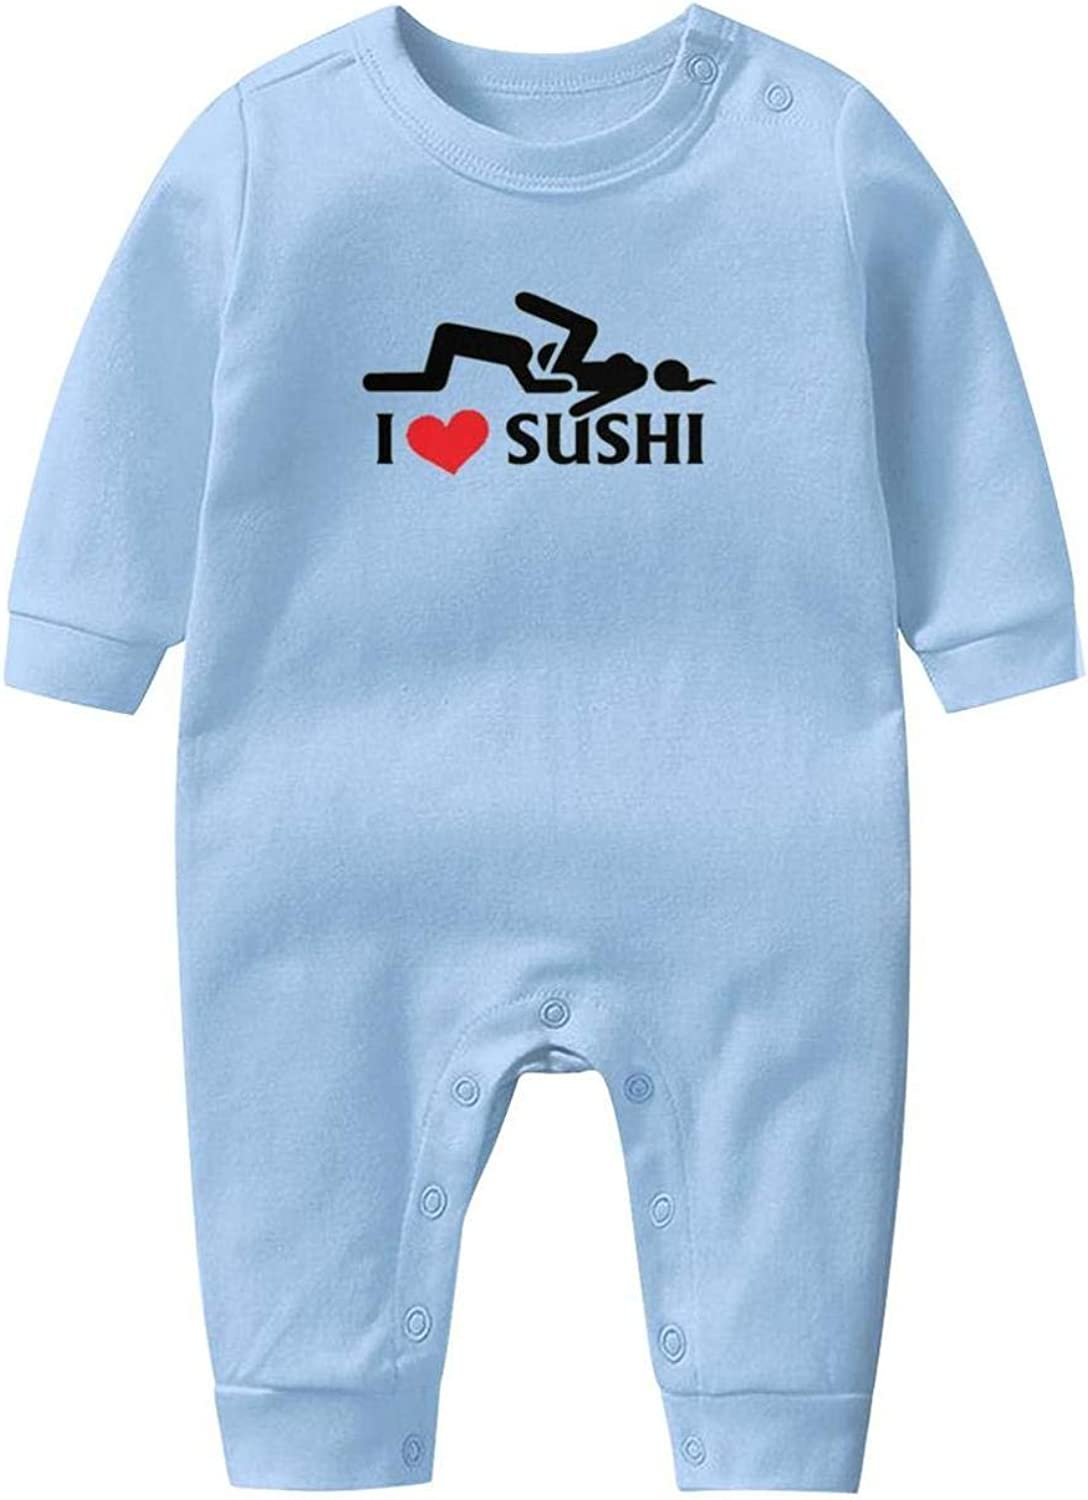 Sushi Pop L Love Shushi Baby Boys Girls Long Sleeve Baby Onesie Cute Baby Clothes